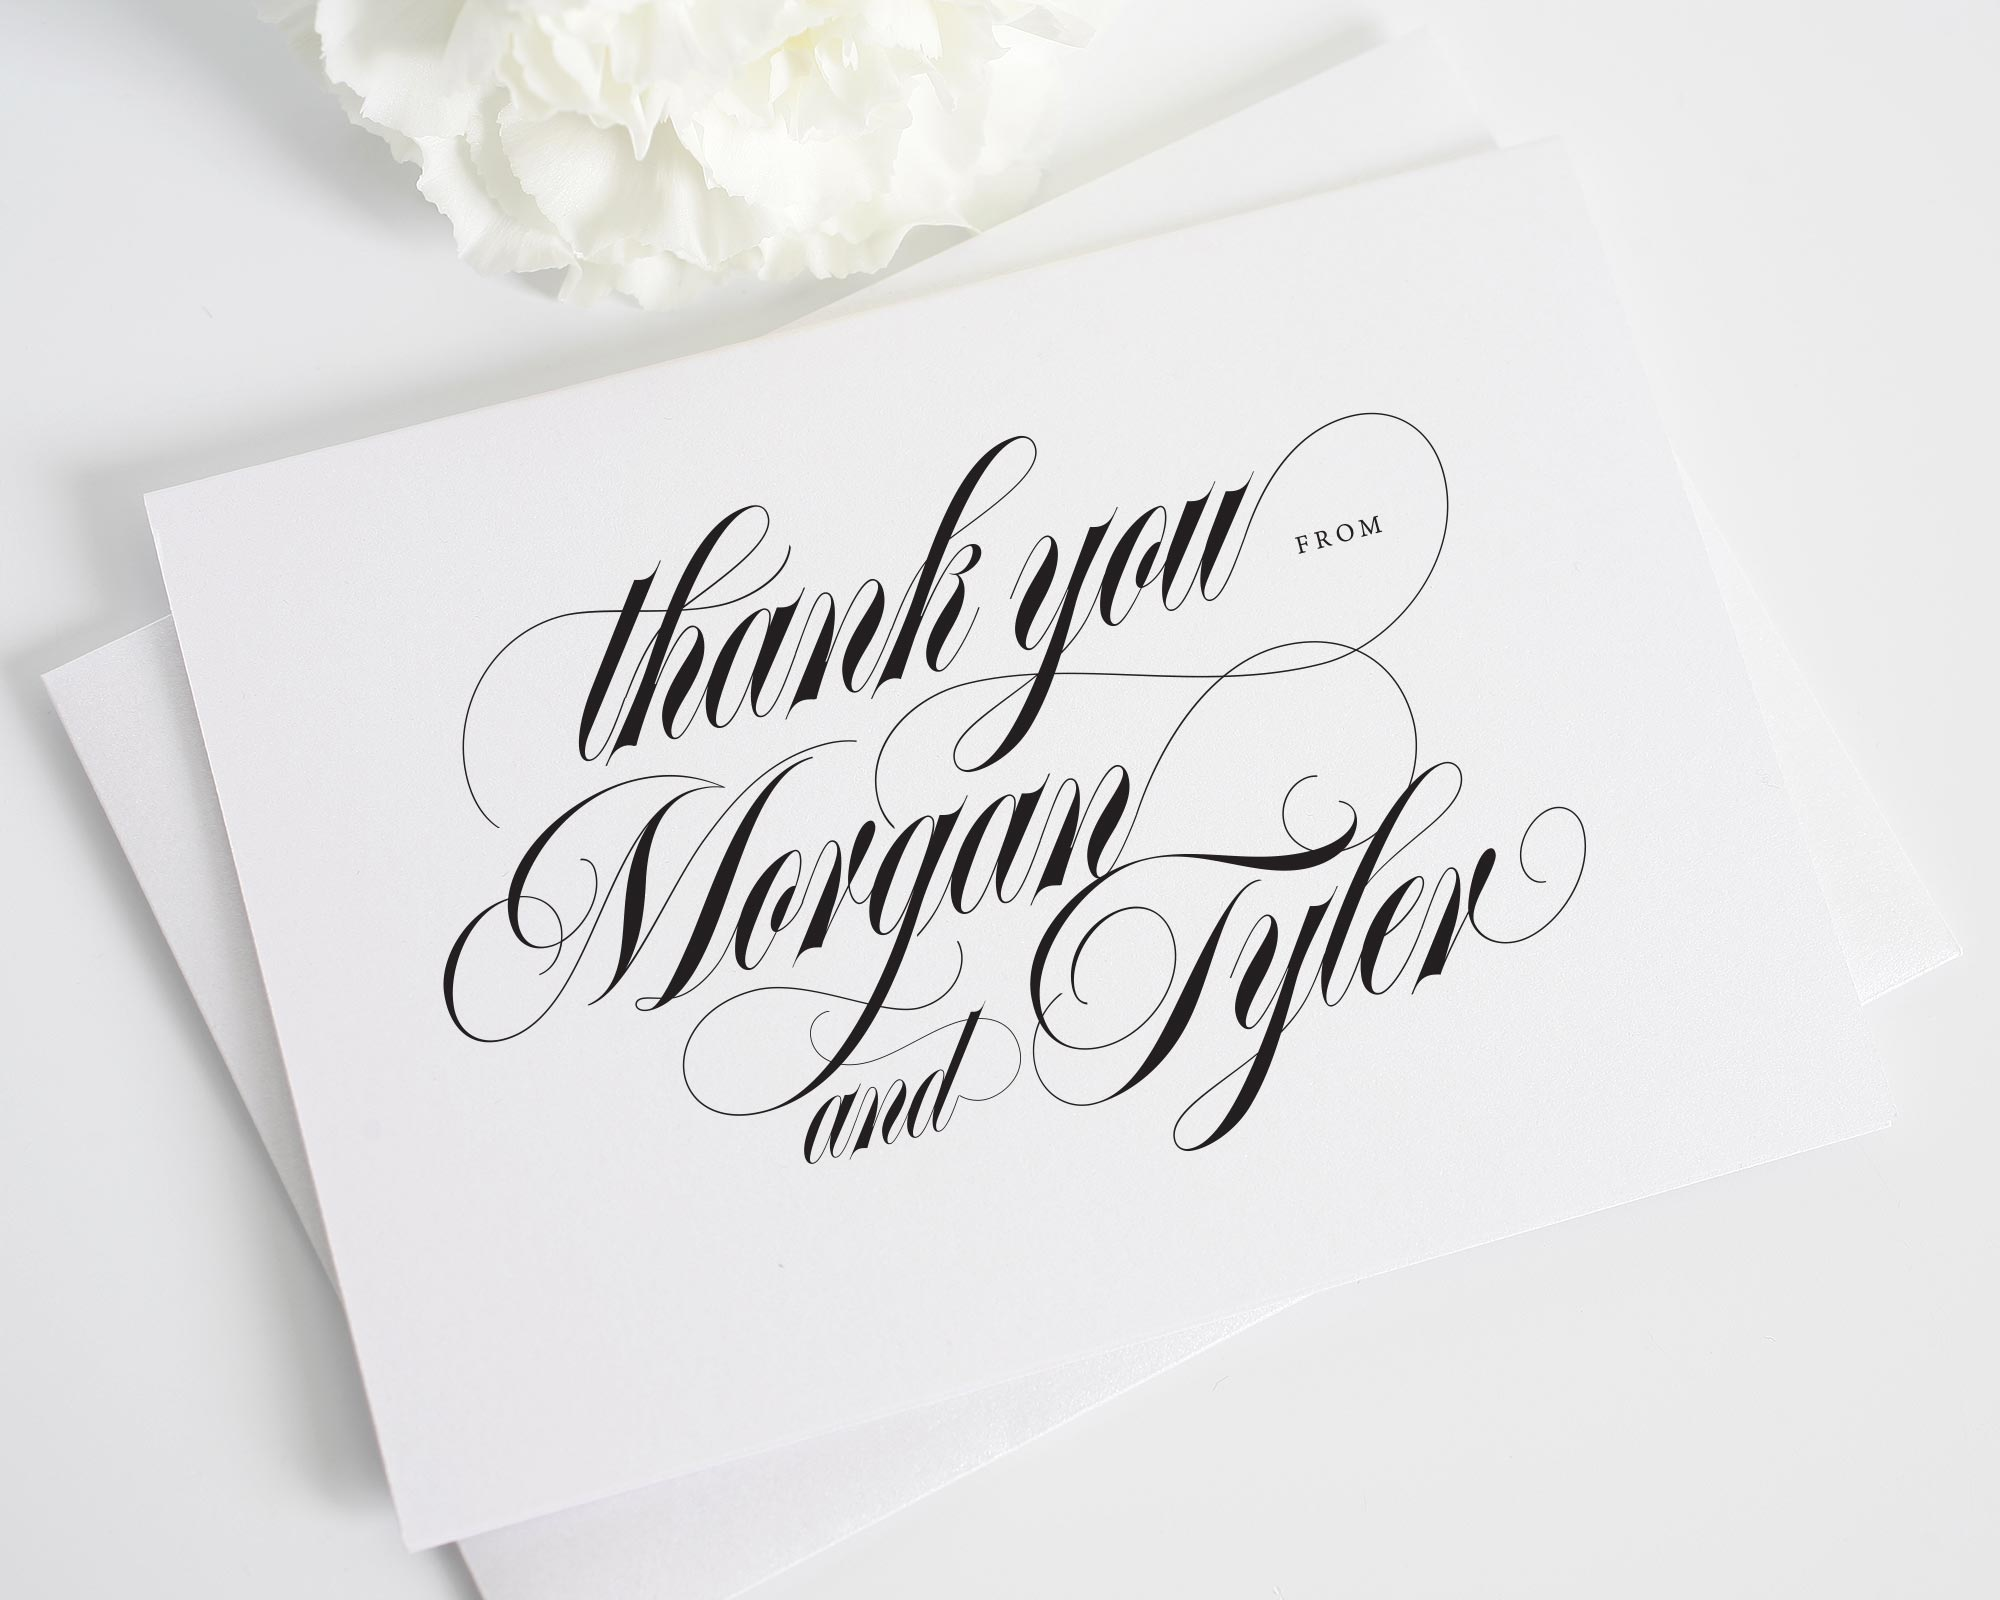 Calligraphy Names Thank You Cards Thank You Cards By Shine: thank you in calligraphy writing